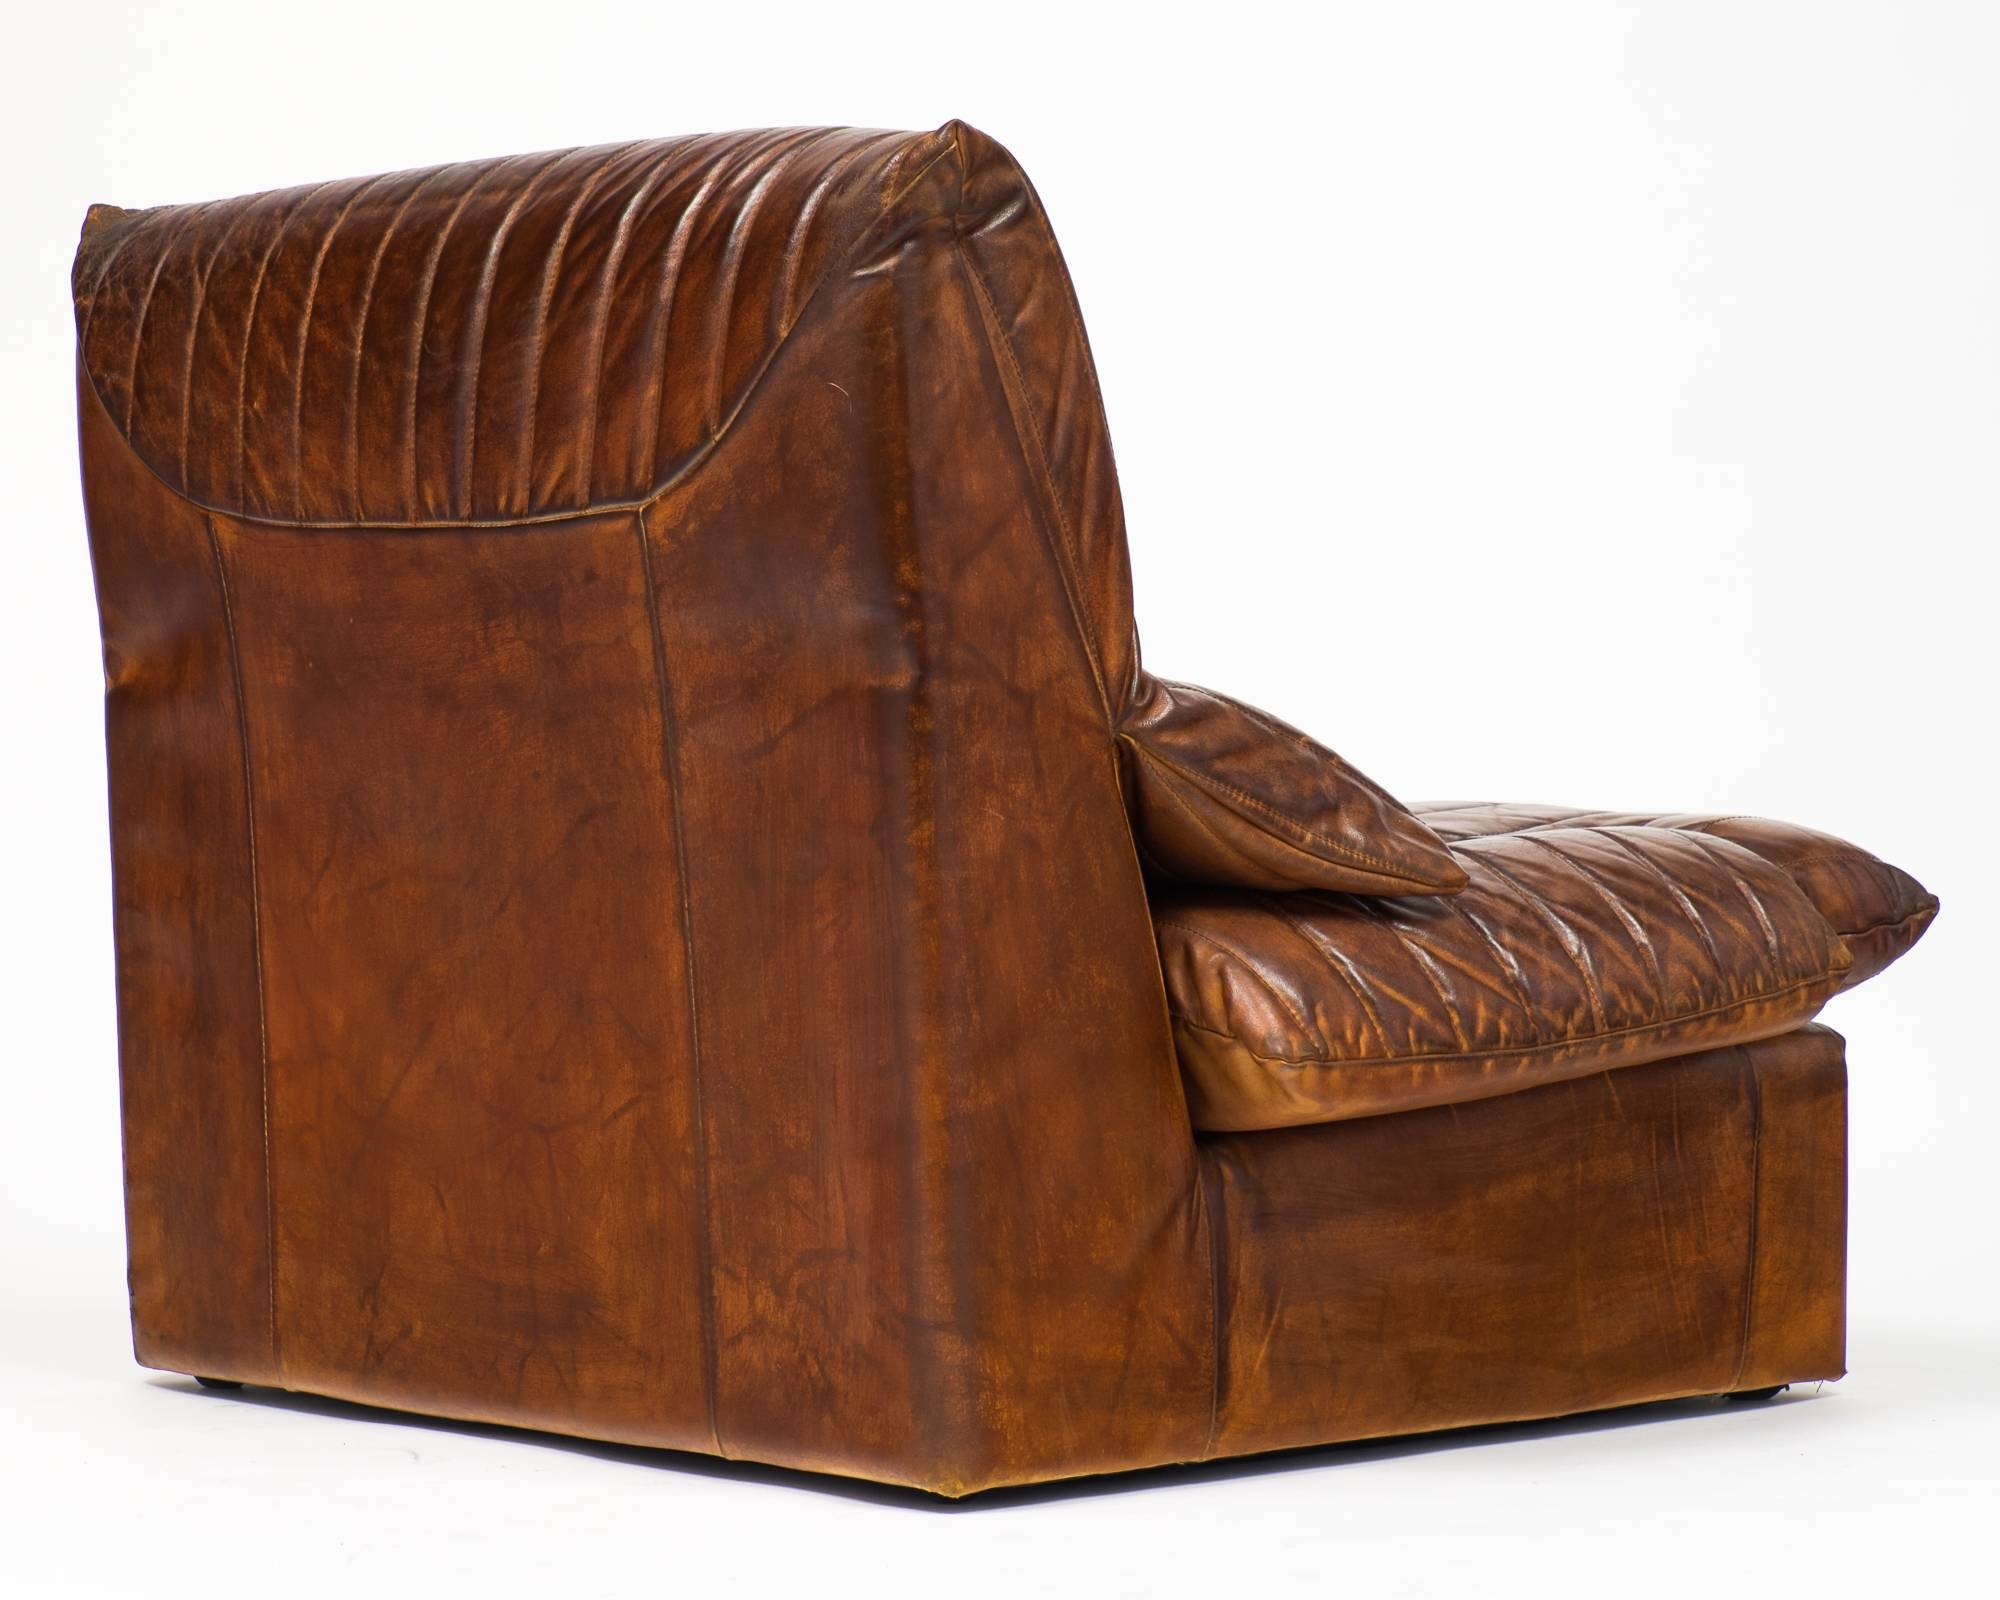 Vintage Roche Bobois Leather Armchairs - Jean Marc Fray regarding Vintage Leather Armchairs (Image 26 of 30)